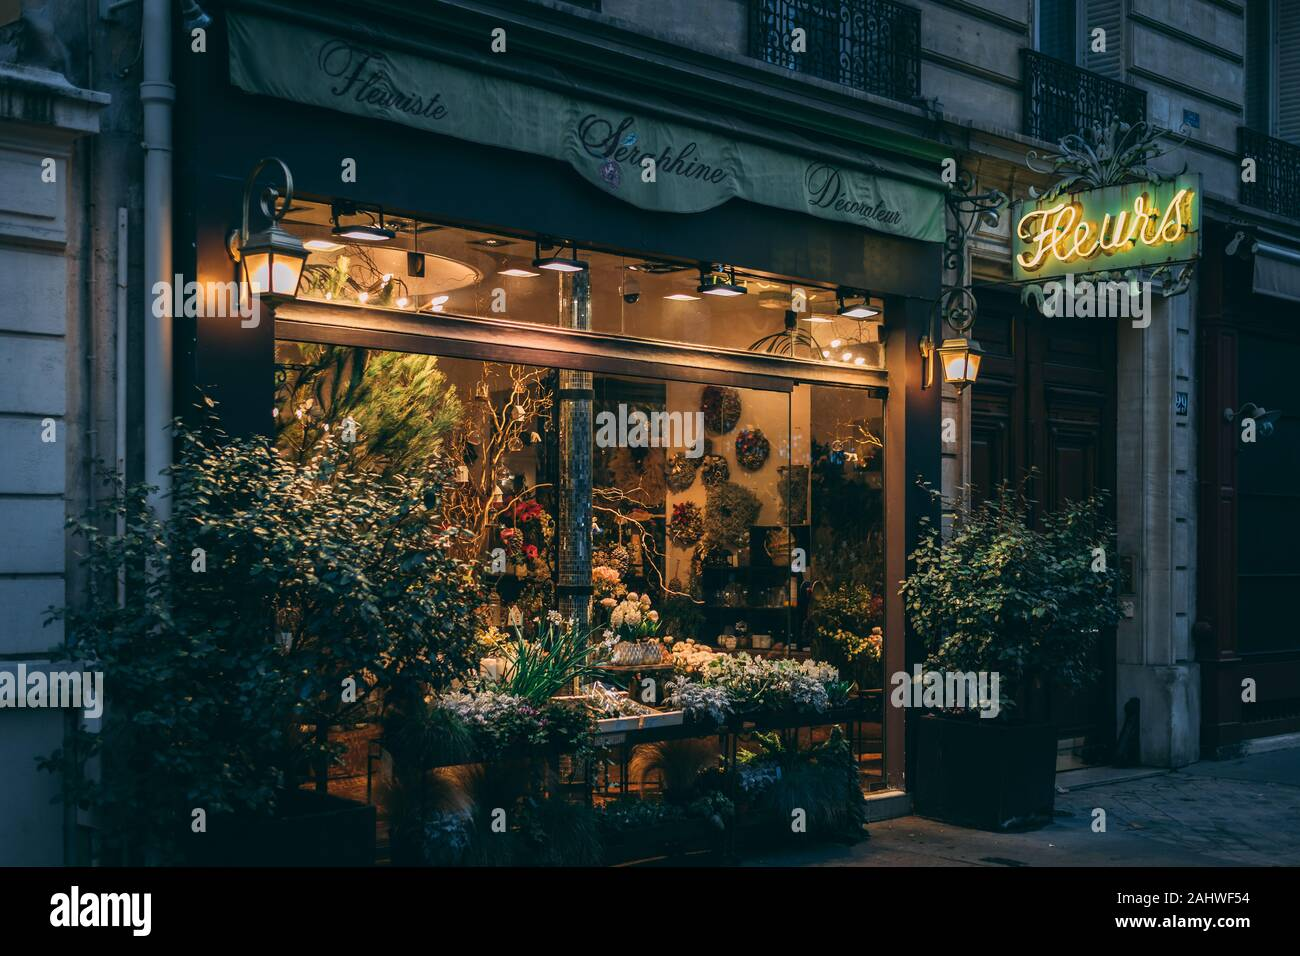 A flower shop with neon sign in Paris, France Stock Photo